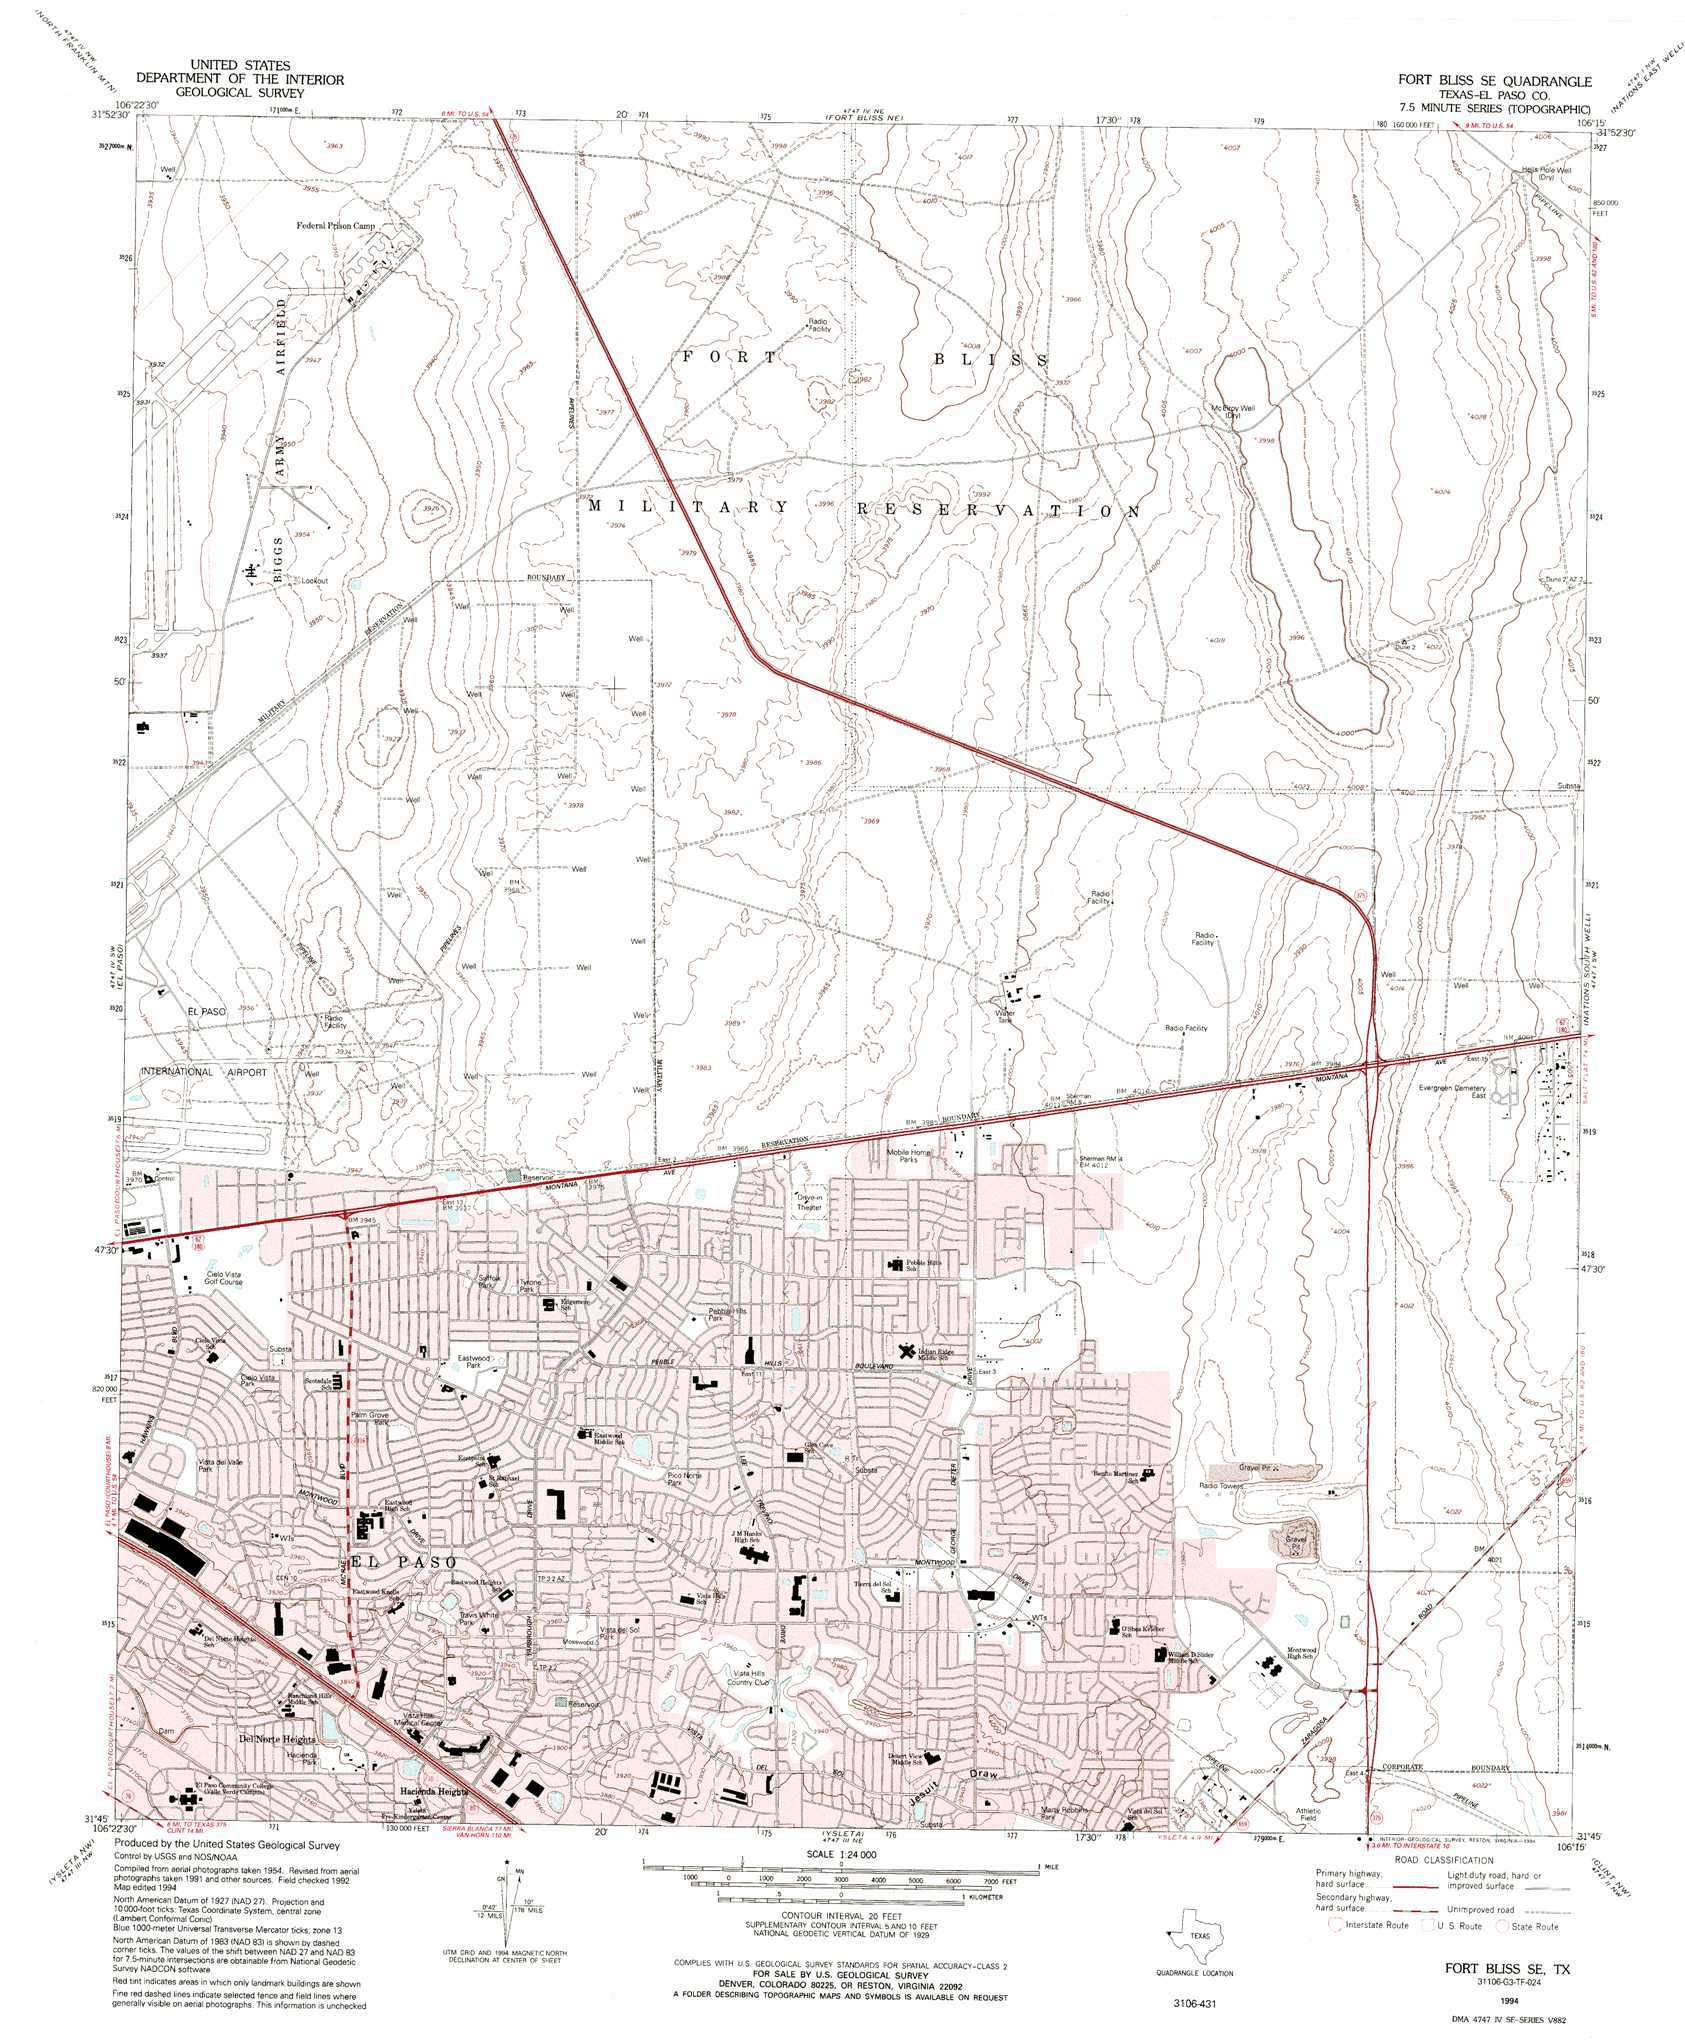 Fort Bliss Se Topographic Map TX  USGS Topo Quad 31106g3